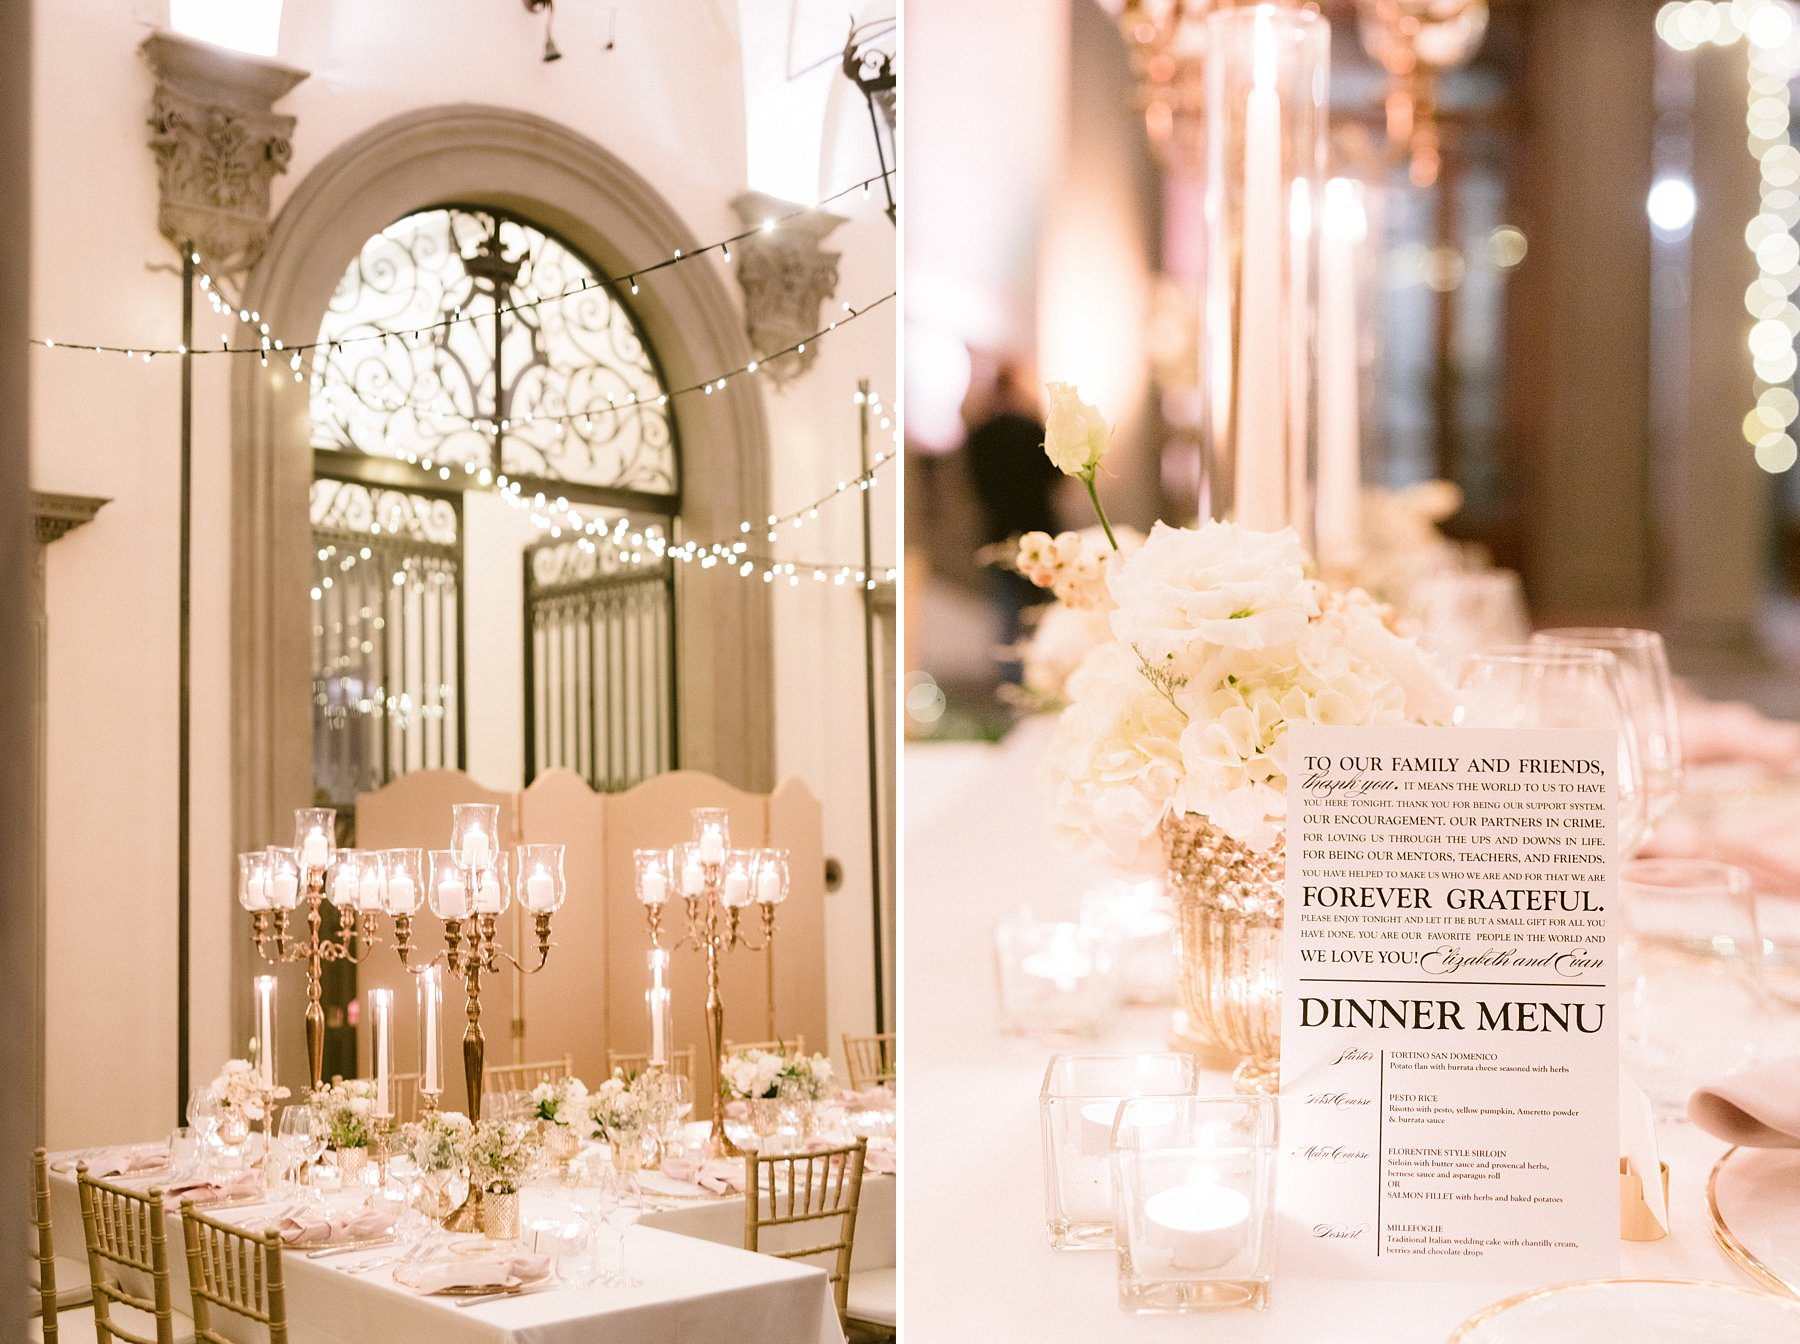 Intimate exquisite wedding in the heart of Florence, Italy. This beautiful American couple opted for the most elegant and exclusive venue for their exquisite wedding: Palazzo Gondi, where the ceremony and the elegant and luxury reception took place. The sumptuous dinner decor in the courtyard, surrounded by a colonnade a perfect location for a memorable event and for photos that capture all the feelings that go with it